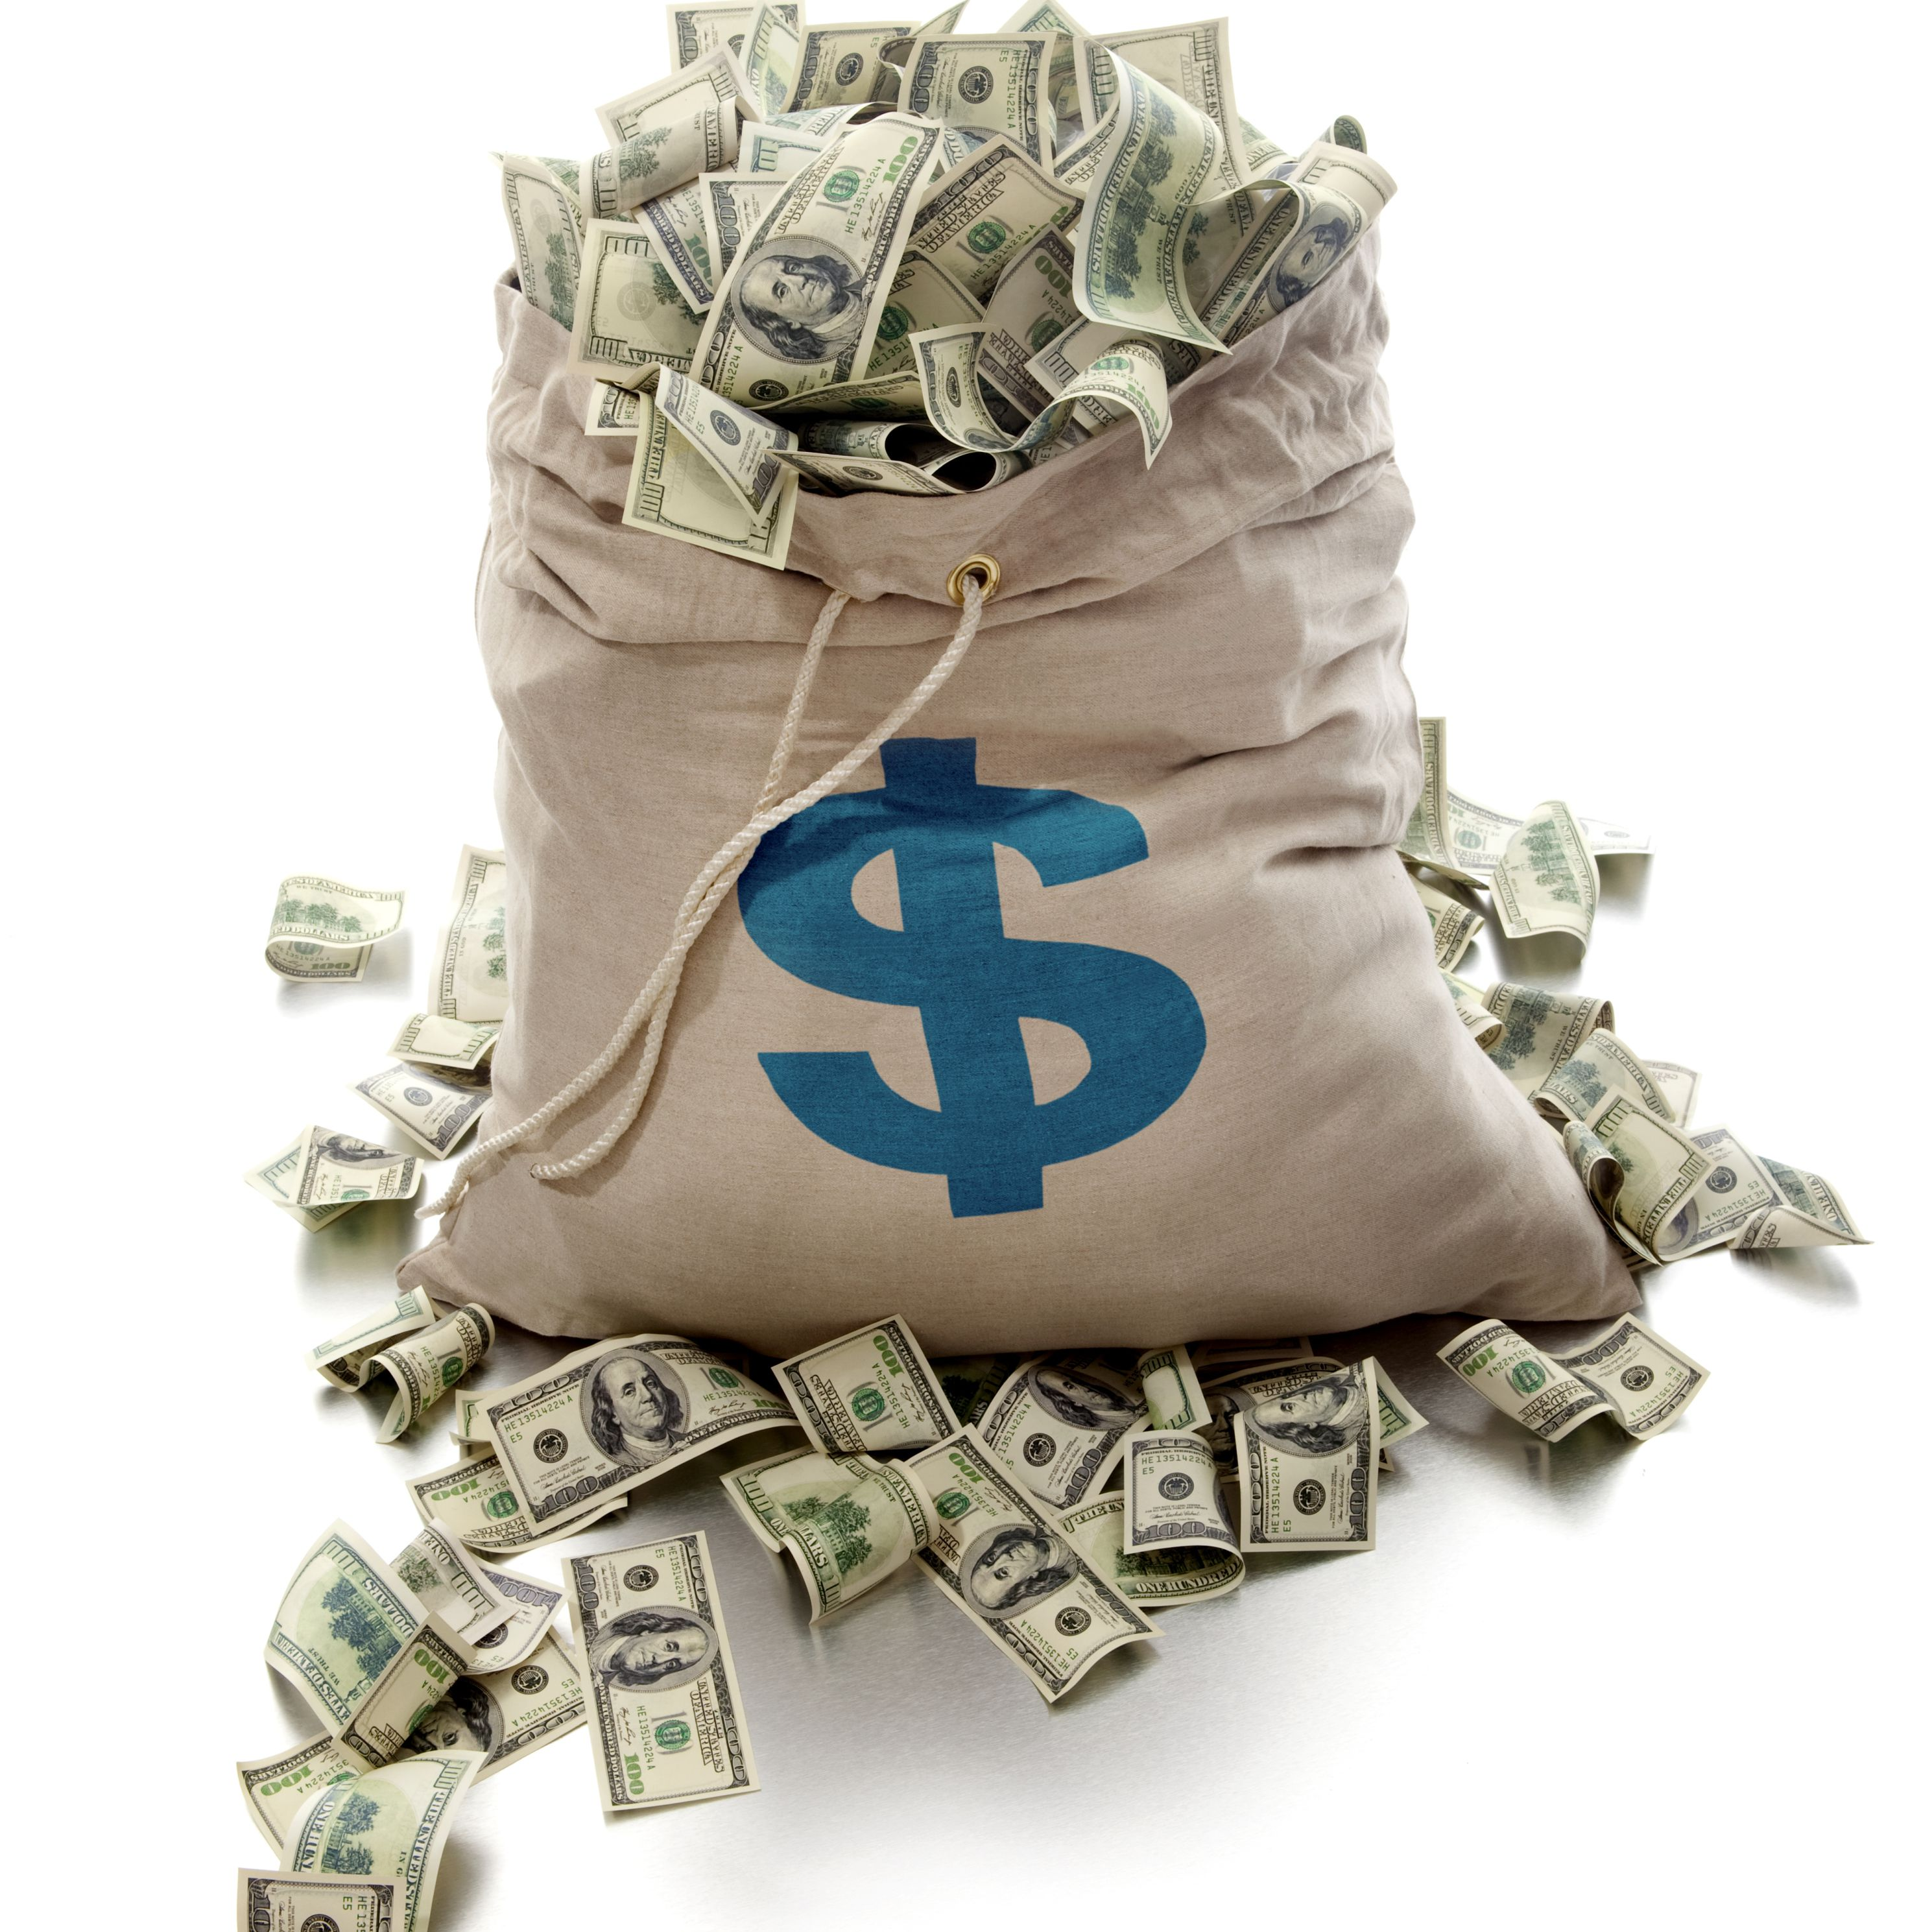 d5ddbed7ff6e Cash Sweepstakes - Chances to Win Free Money